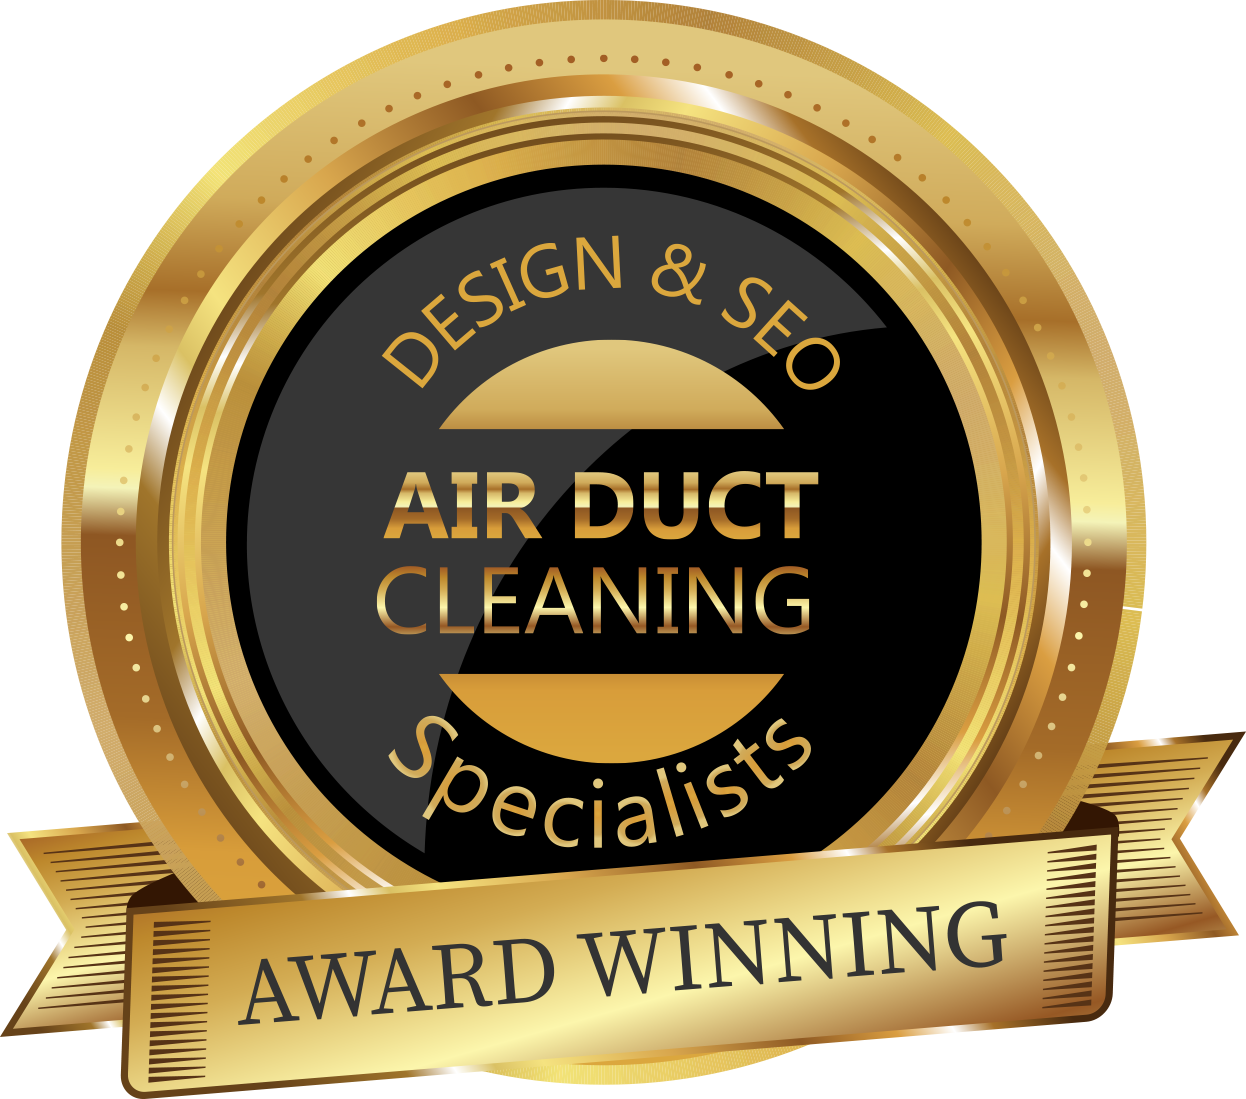 Badge - Award Winning Air Duct Cleaning Design & SEO Specialists